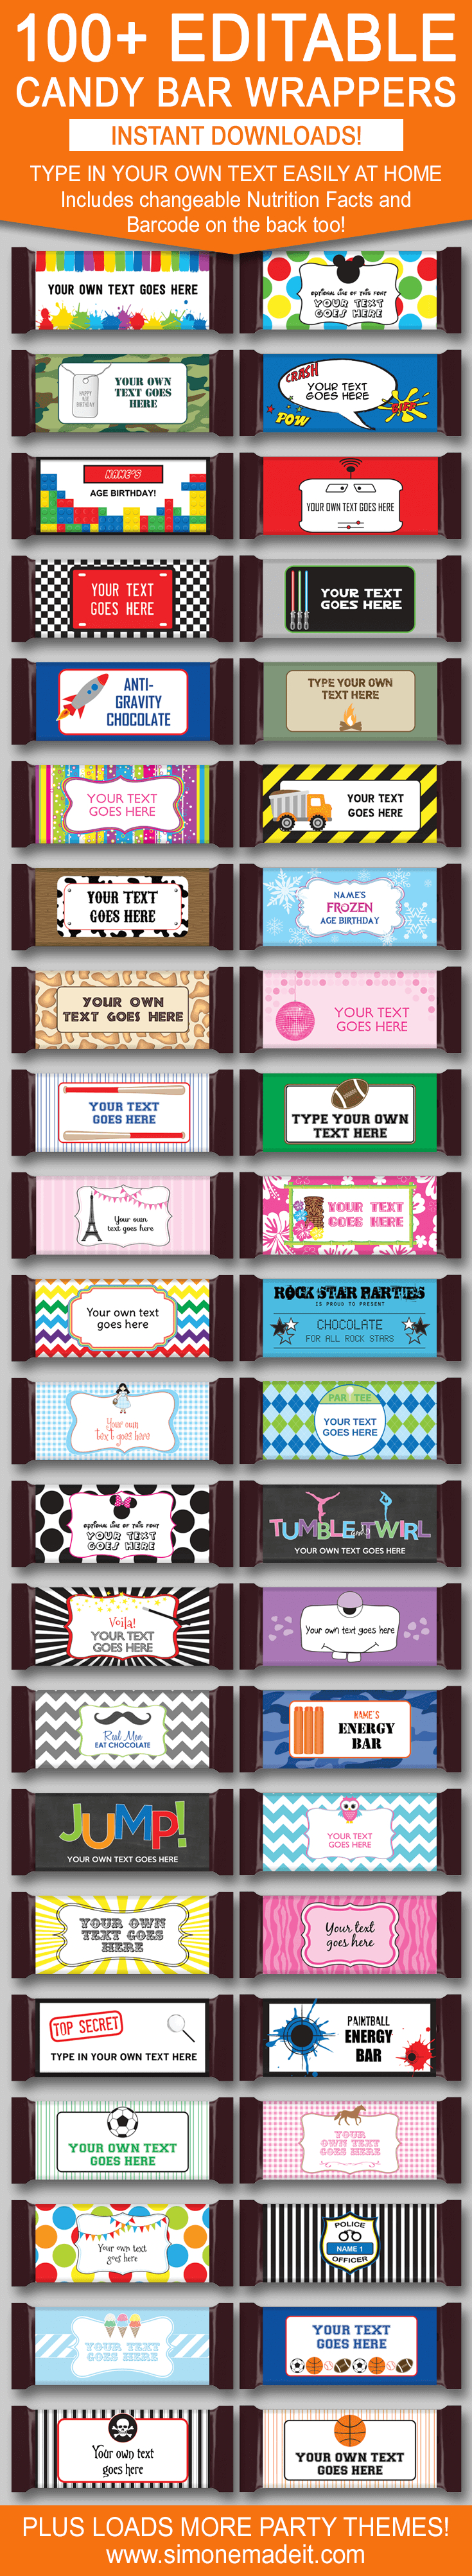 Diy Candy Bar Wrapper Templates | Party Favors | Chocolate Bar Labels - Free Printable Hershey Bar Wrappers